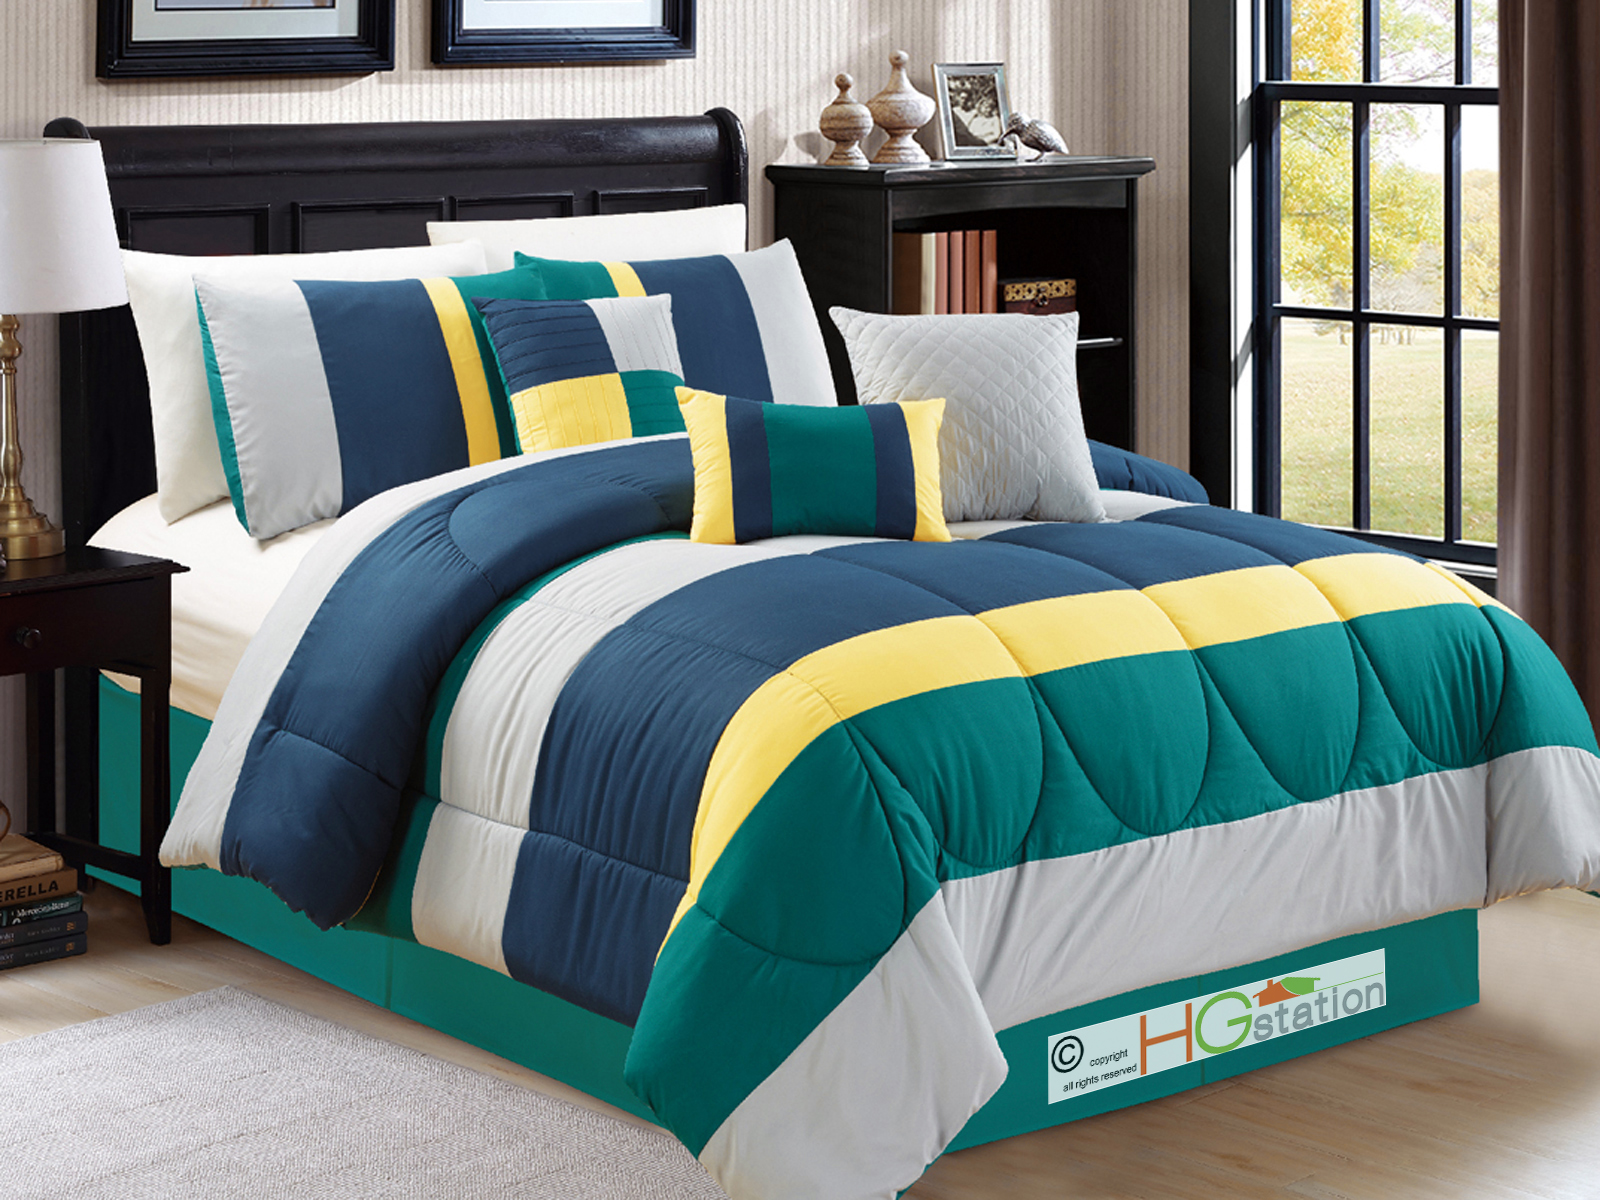 7-Pc Modern Striped Comforter Set Teal Green Navy Blue